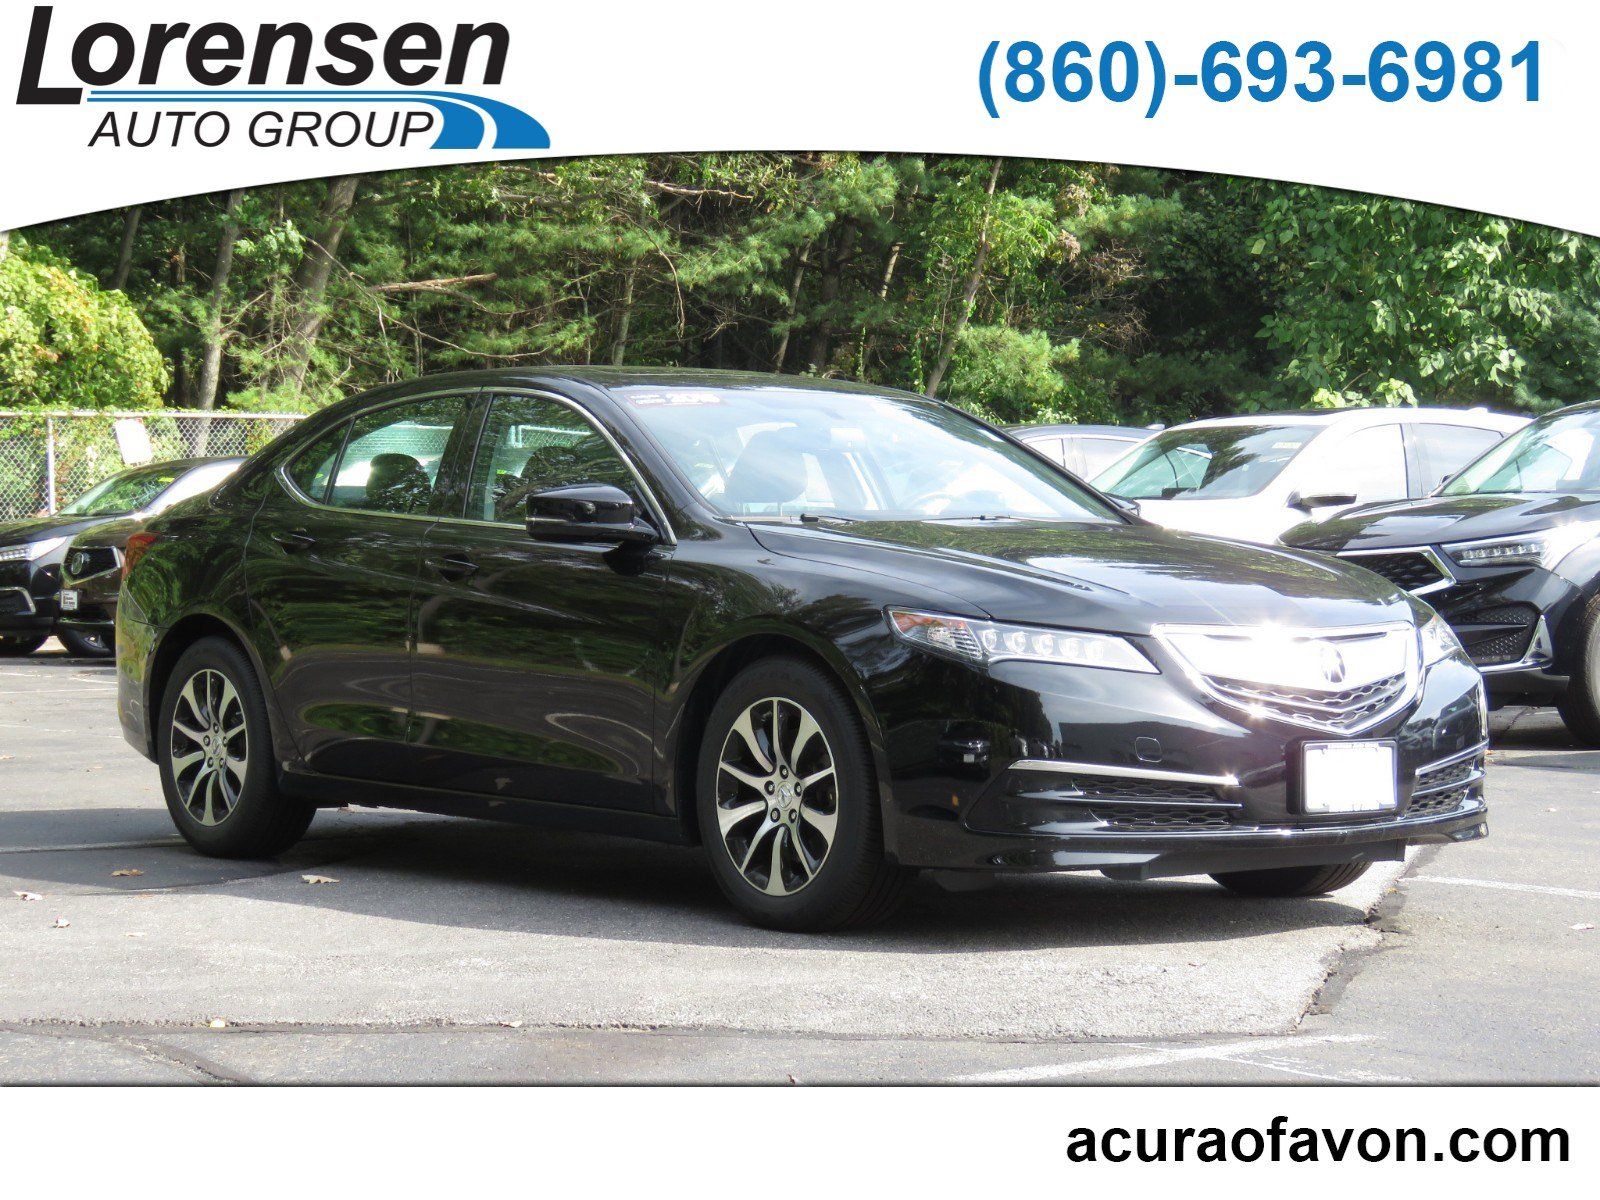 Certified Pre Owned 2015 Acura TLX 4dr Sdn FWD 4dr Car in Watertown